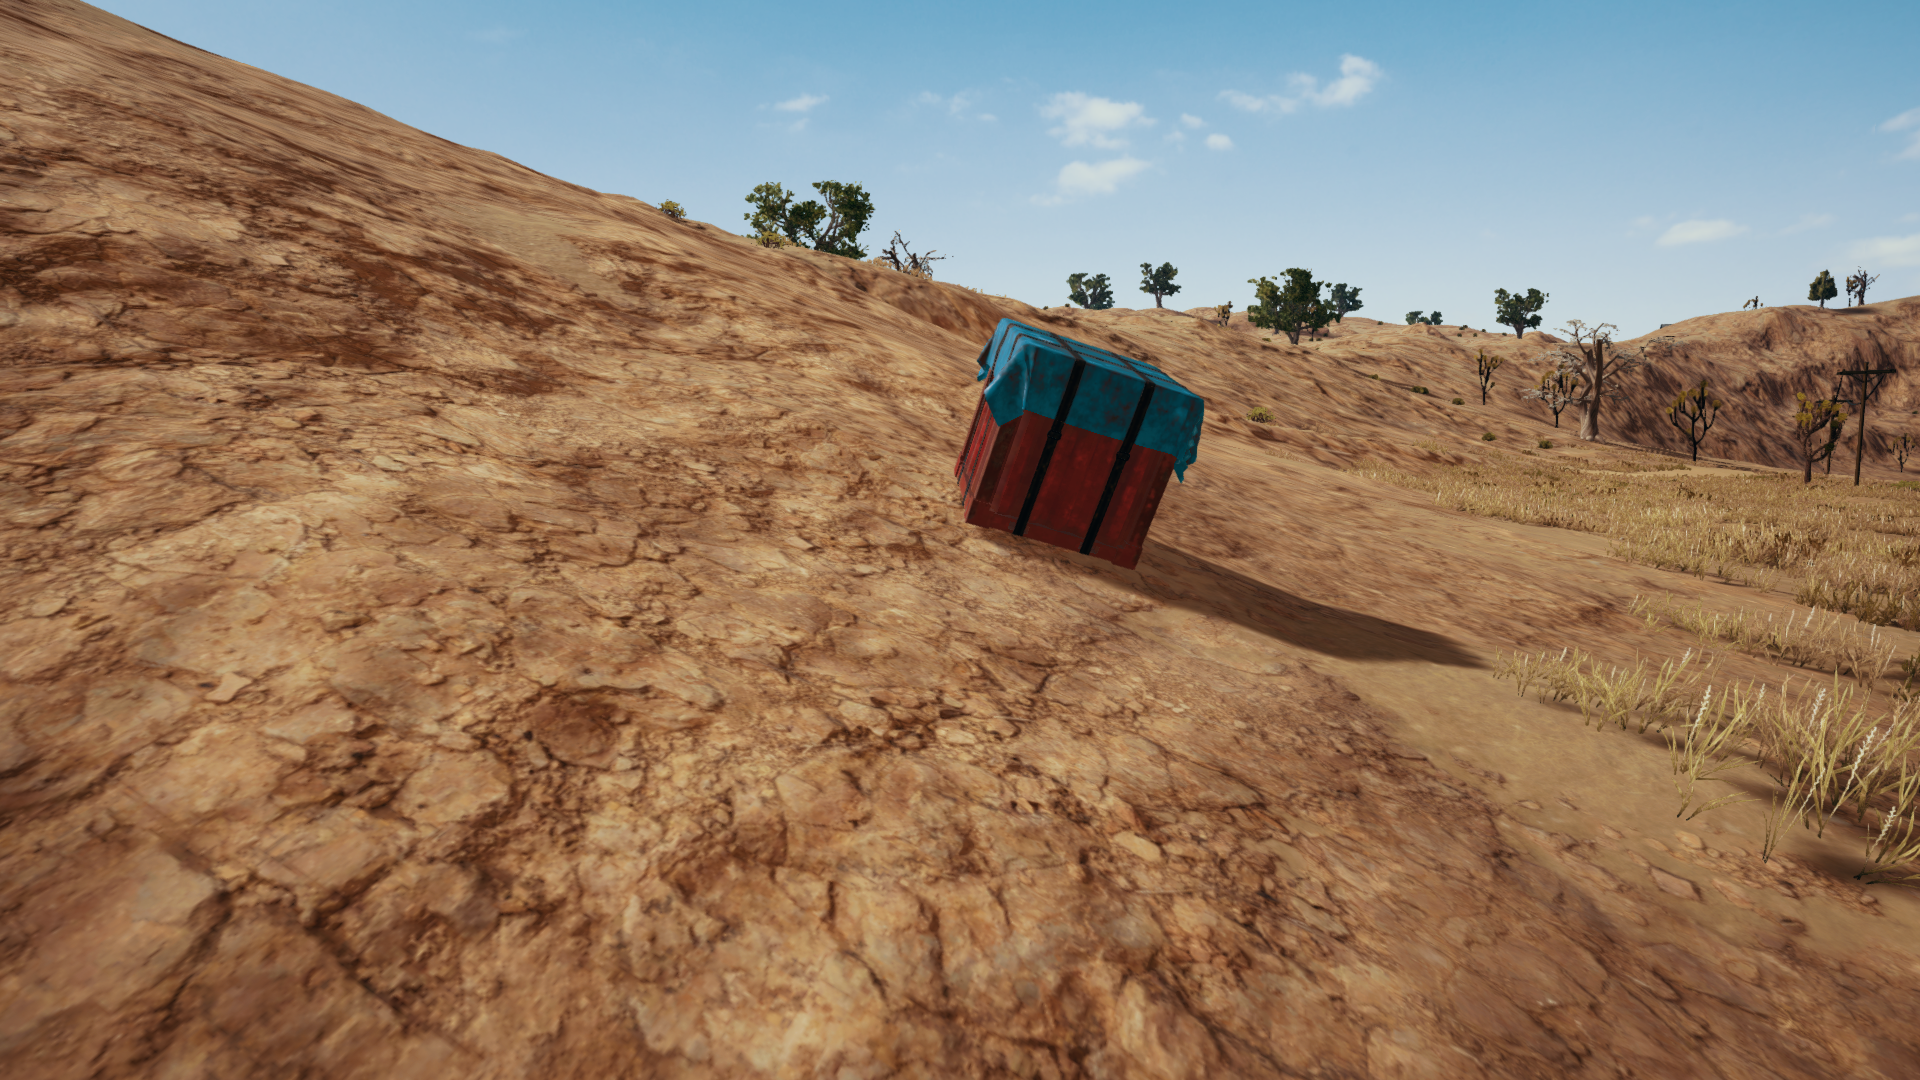 Pubg Air Drop Live Wallpaper: PLAYERUNKNOWN'S BATTLEGROUNDS Wiki